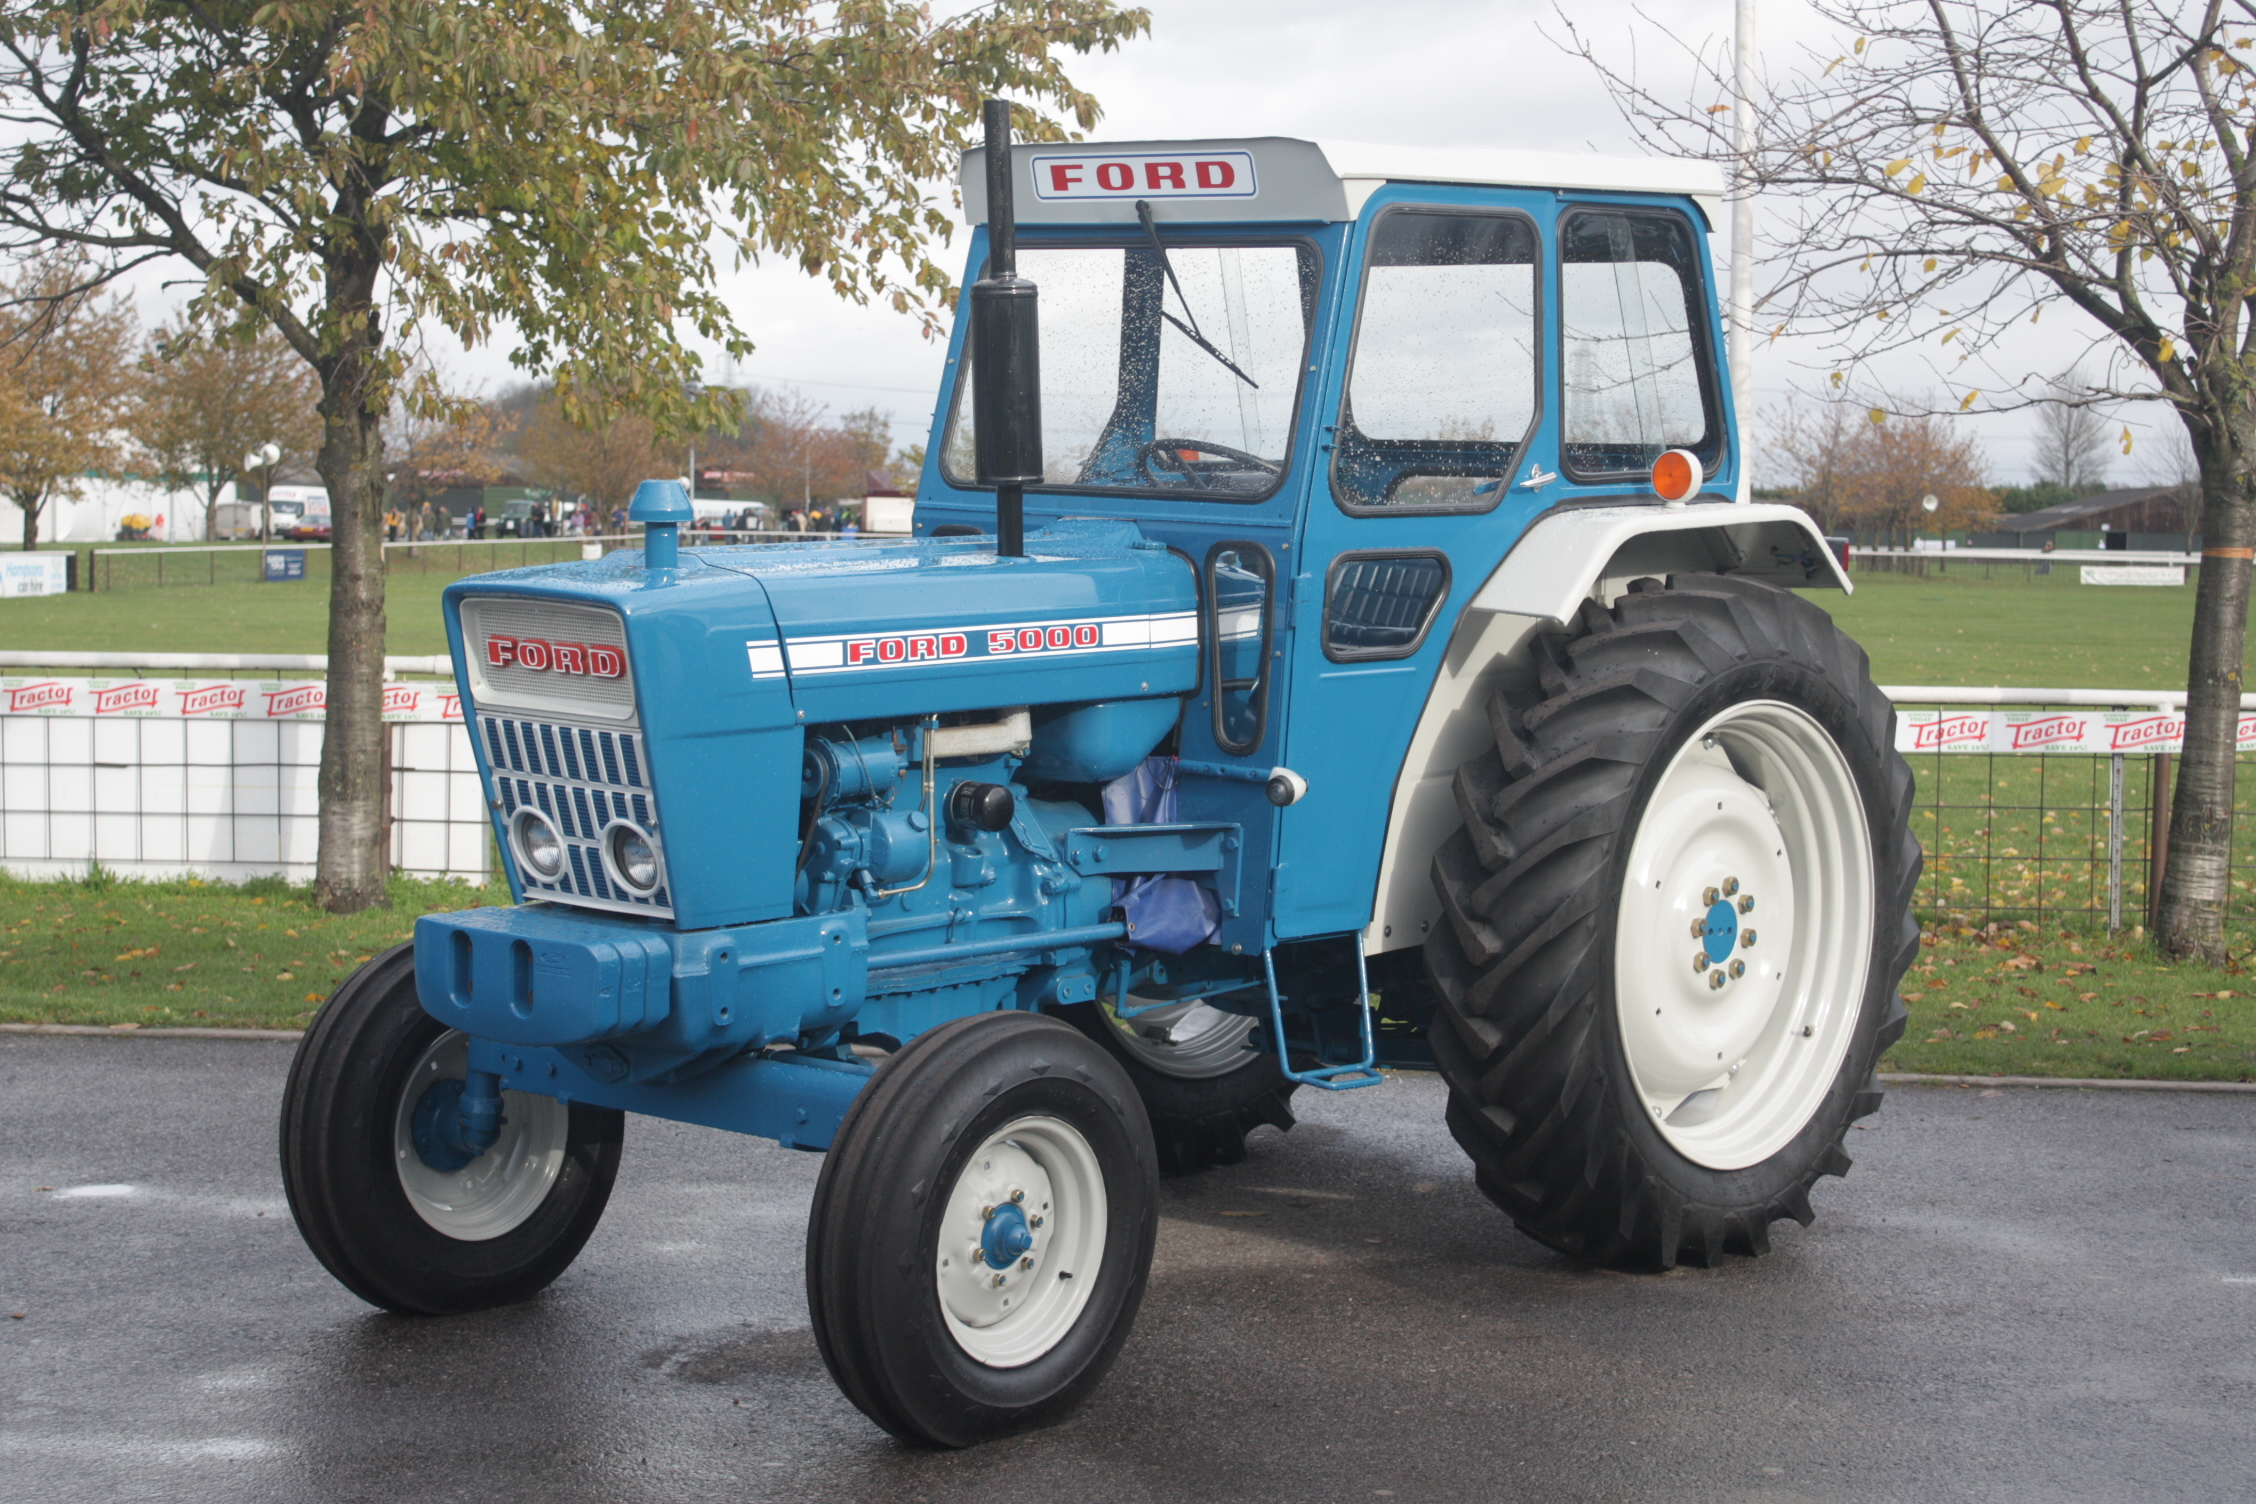 Ford 5000 Tractor Specs : Ford tractor diesel engine kits